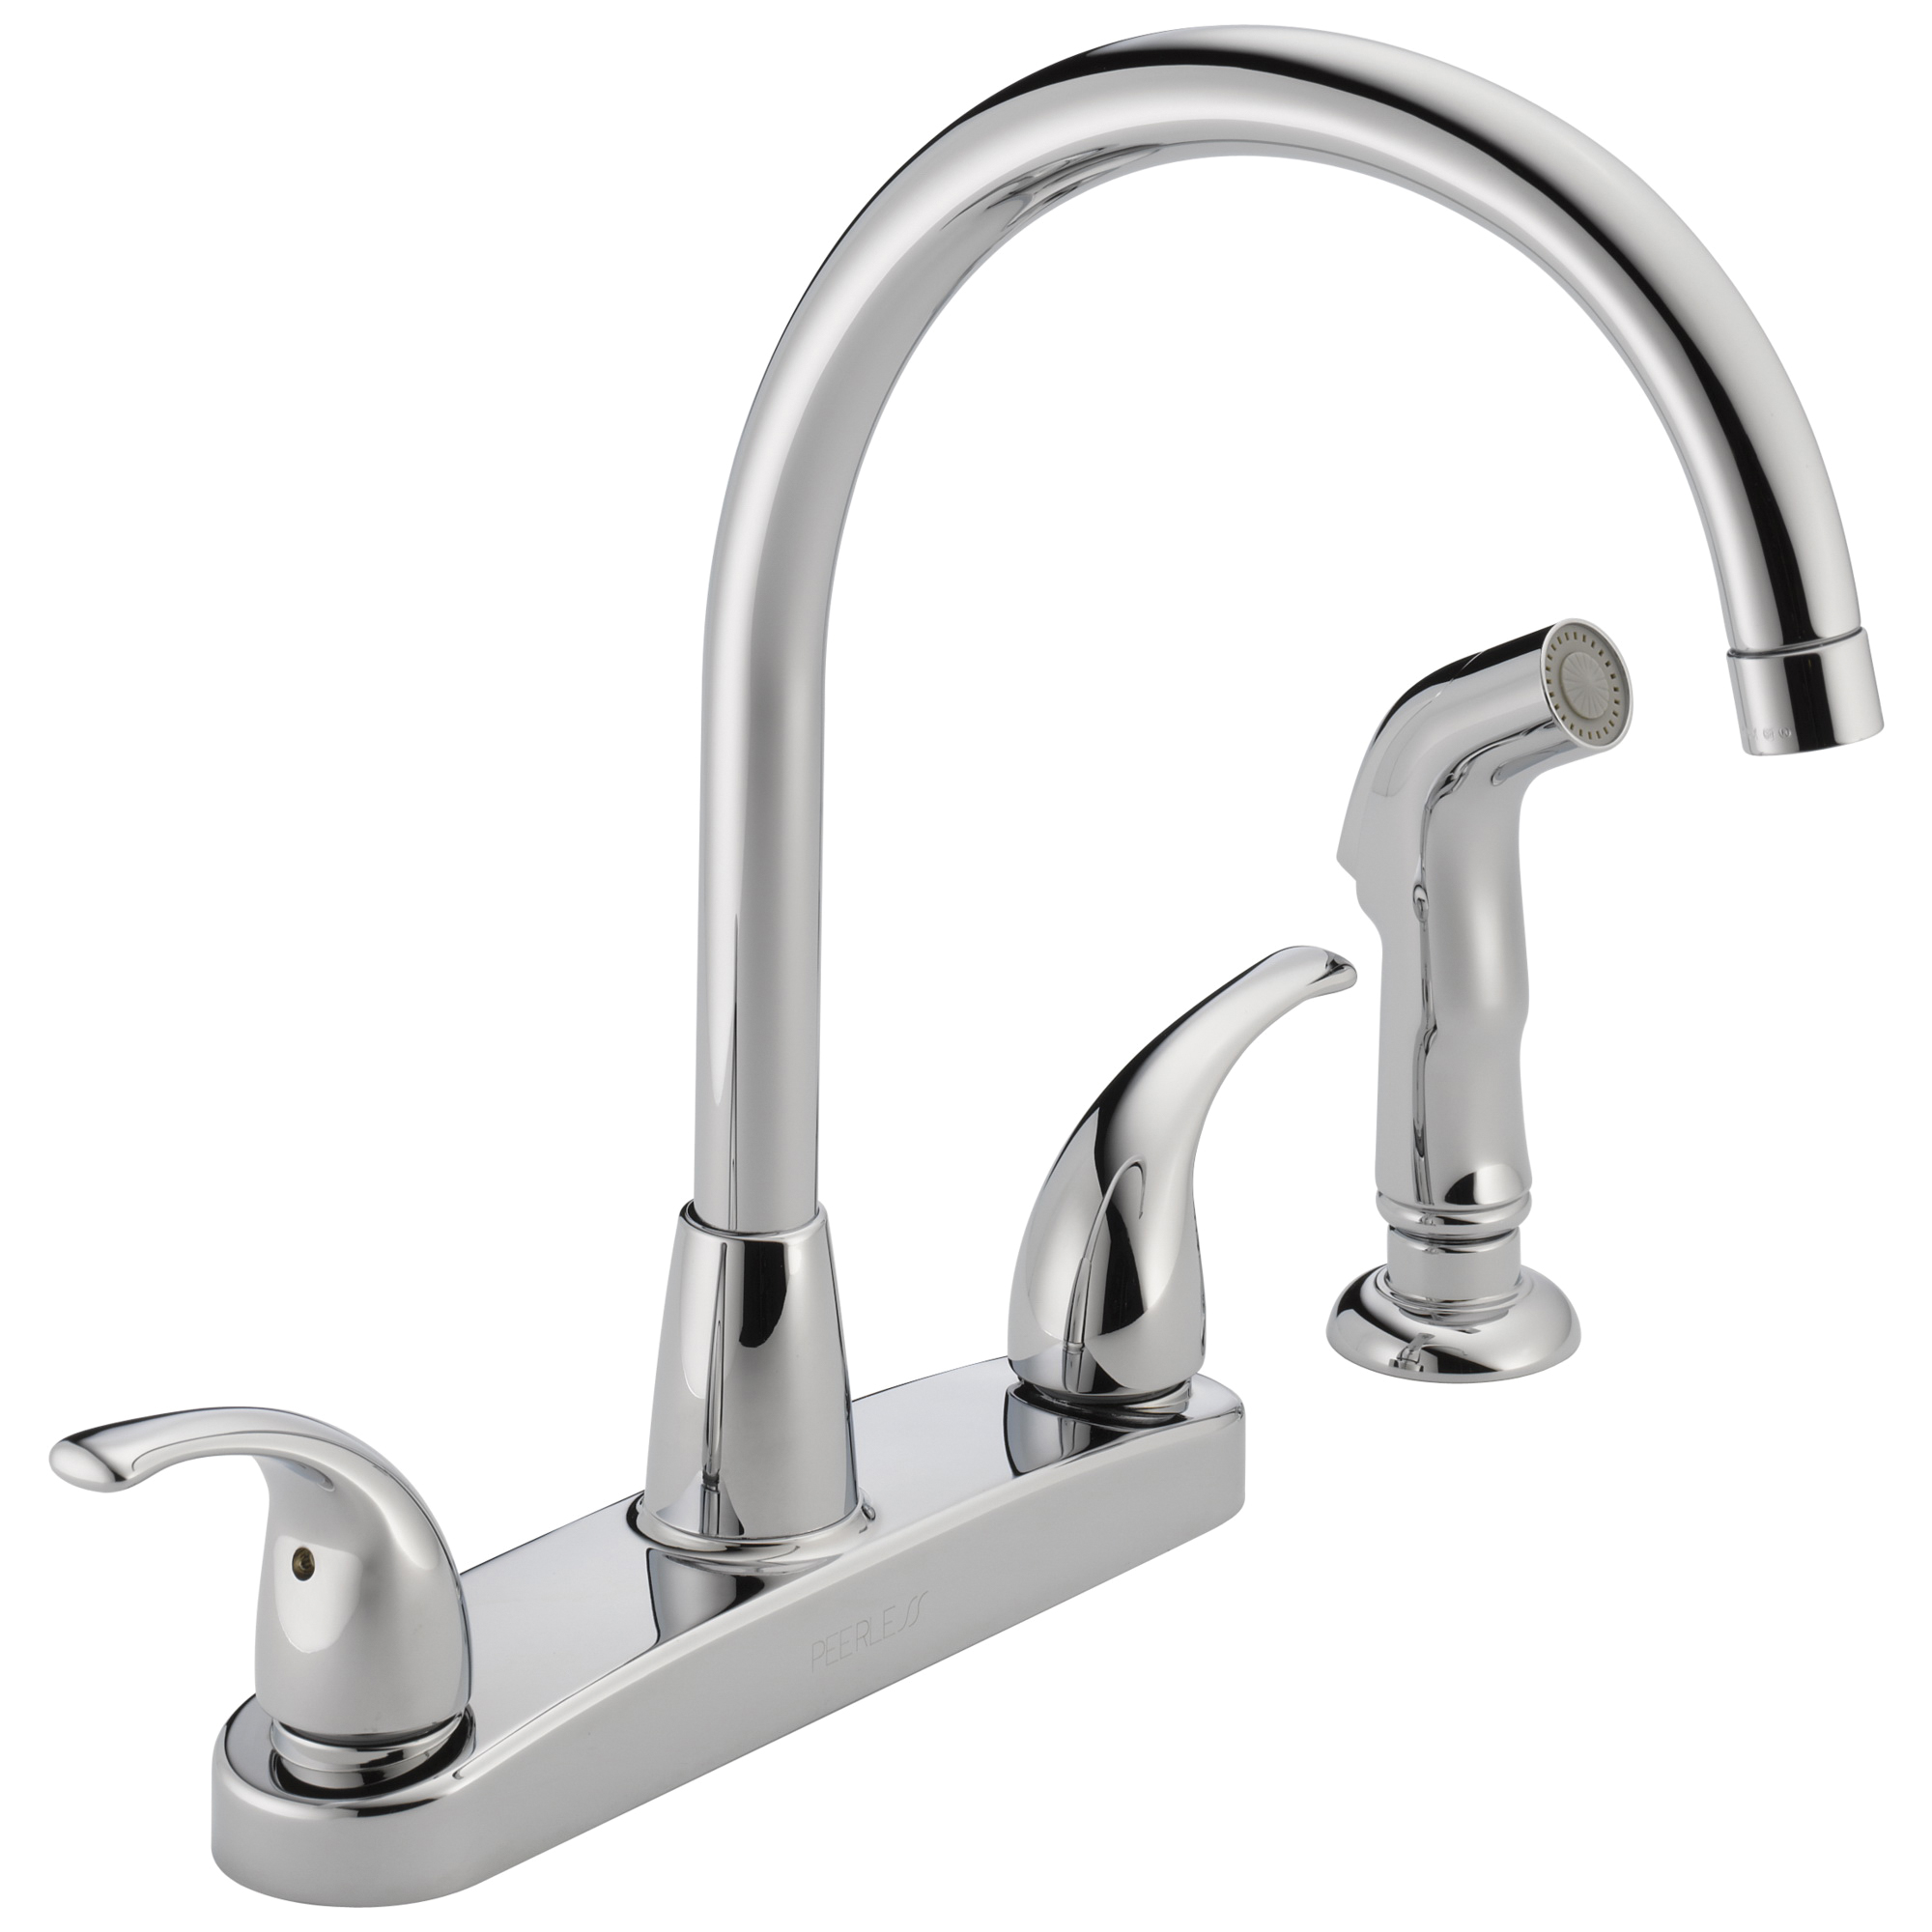 Peerless® P299578LF Kitchen Faucet, Commercial, 1.8 gpm Flow Rate, 8 in Center, Swivel Spout, Polished Chrome, 2 Handles, Import